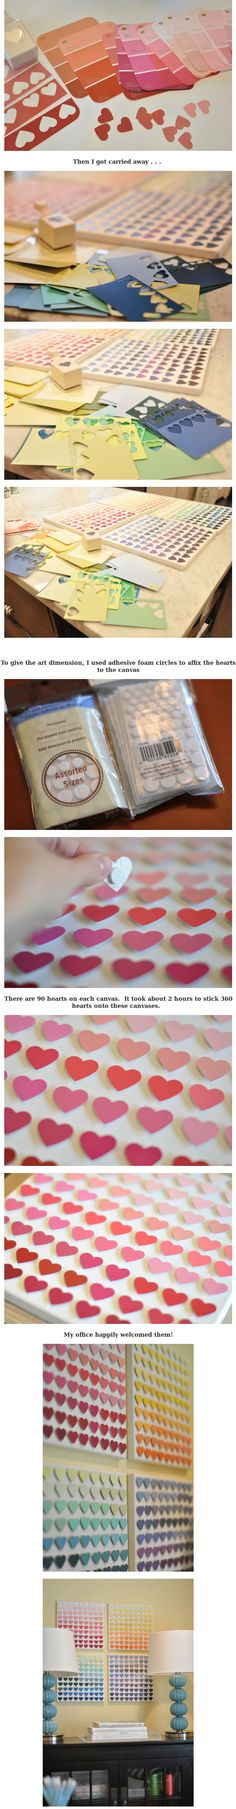 DIY Hearts Shaped Paint Chip Art.